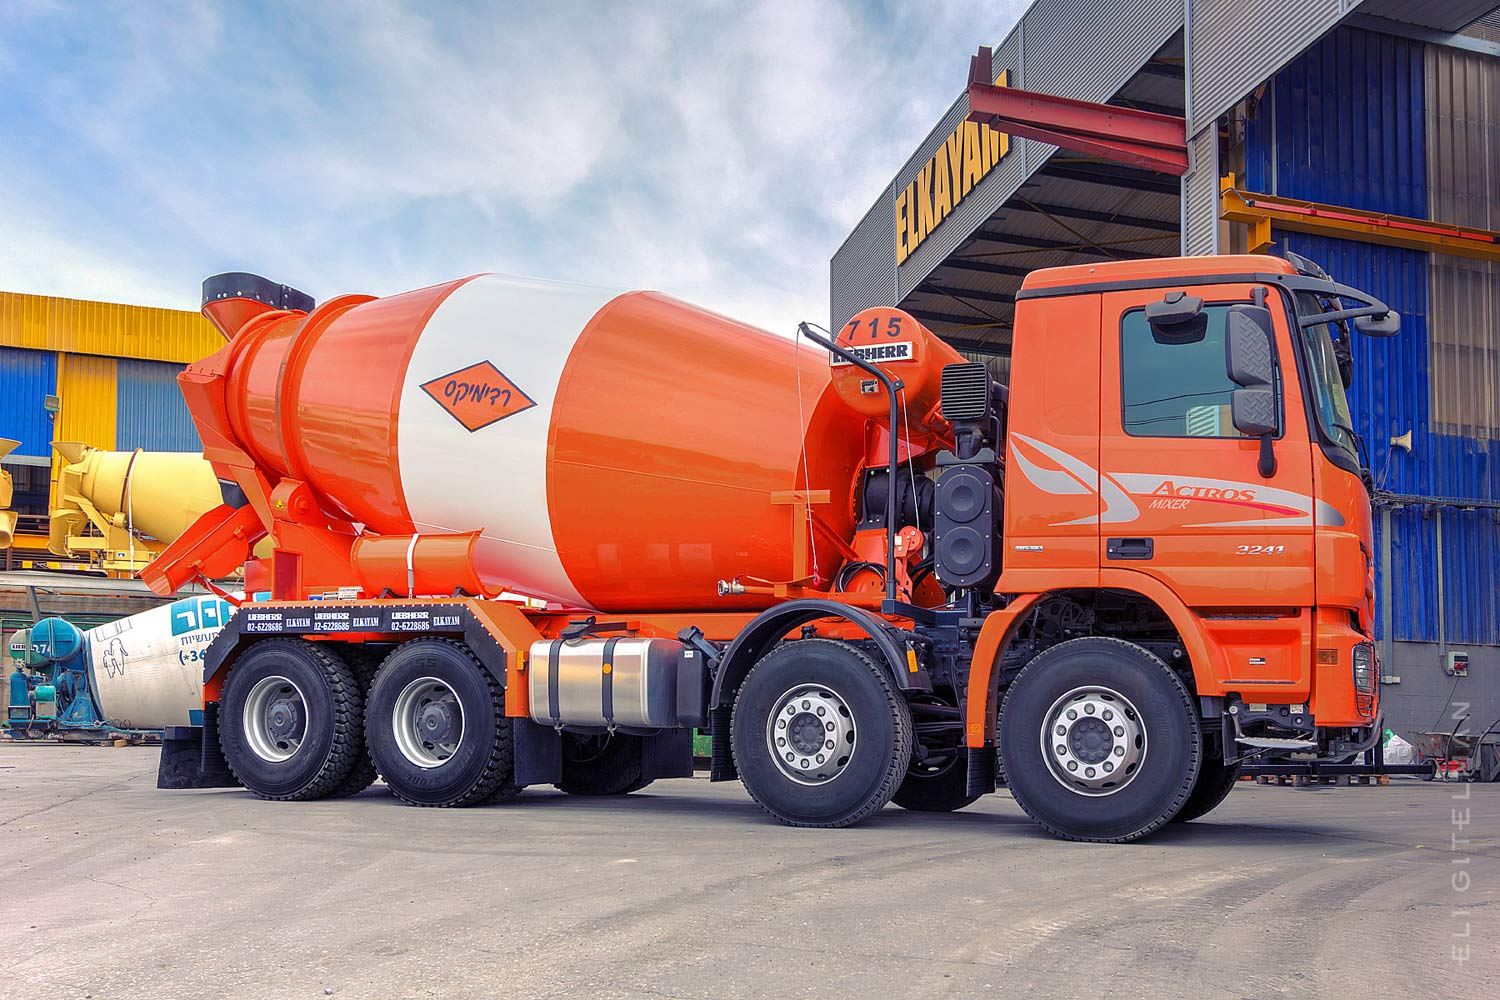 New and shiny concrete mixer transport truck